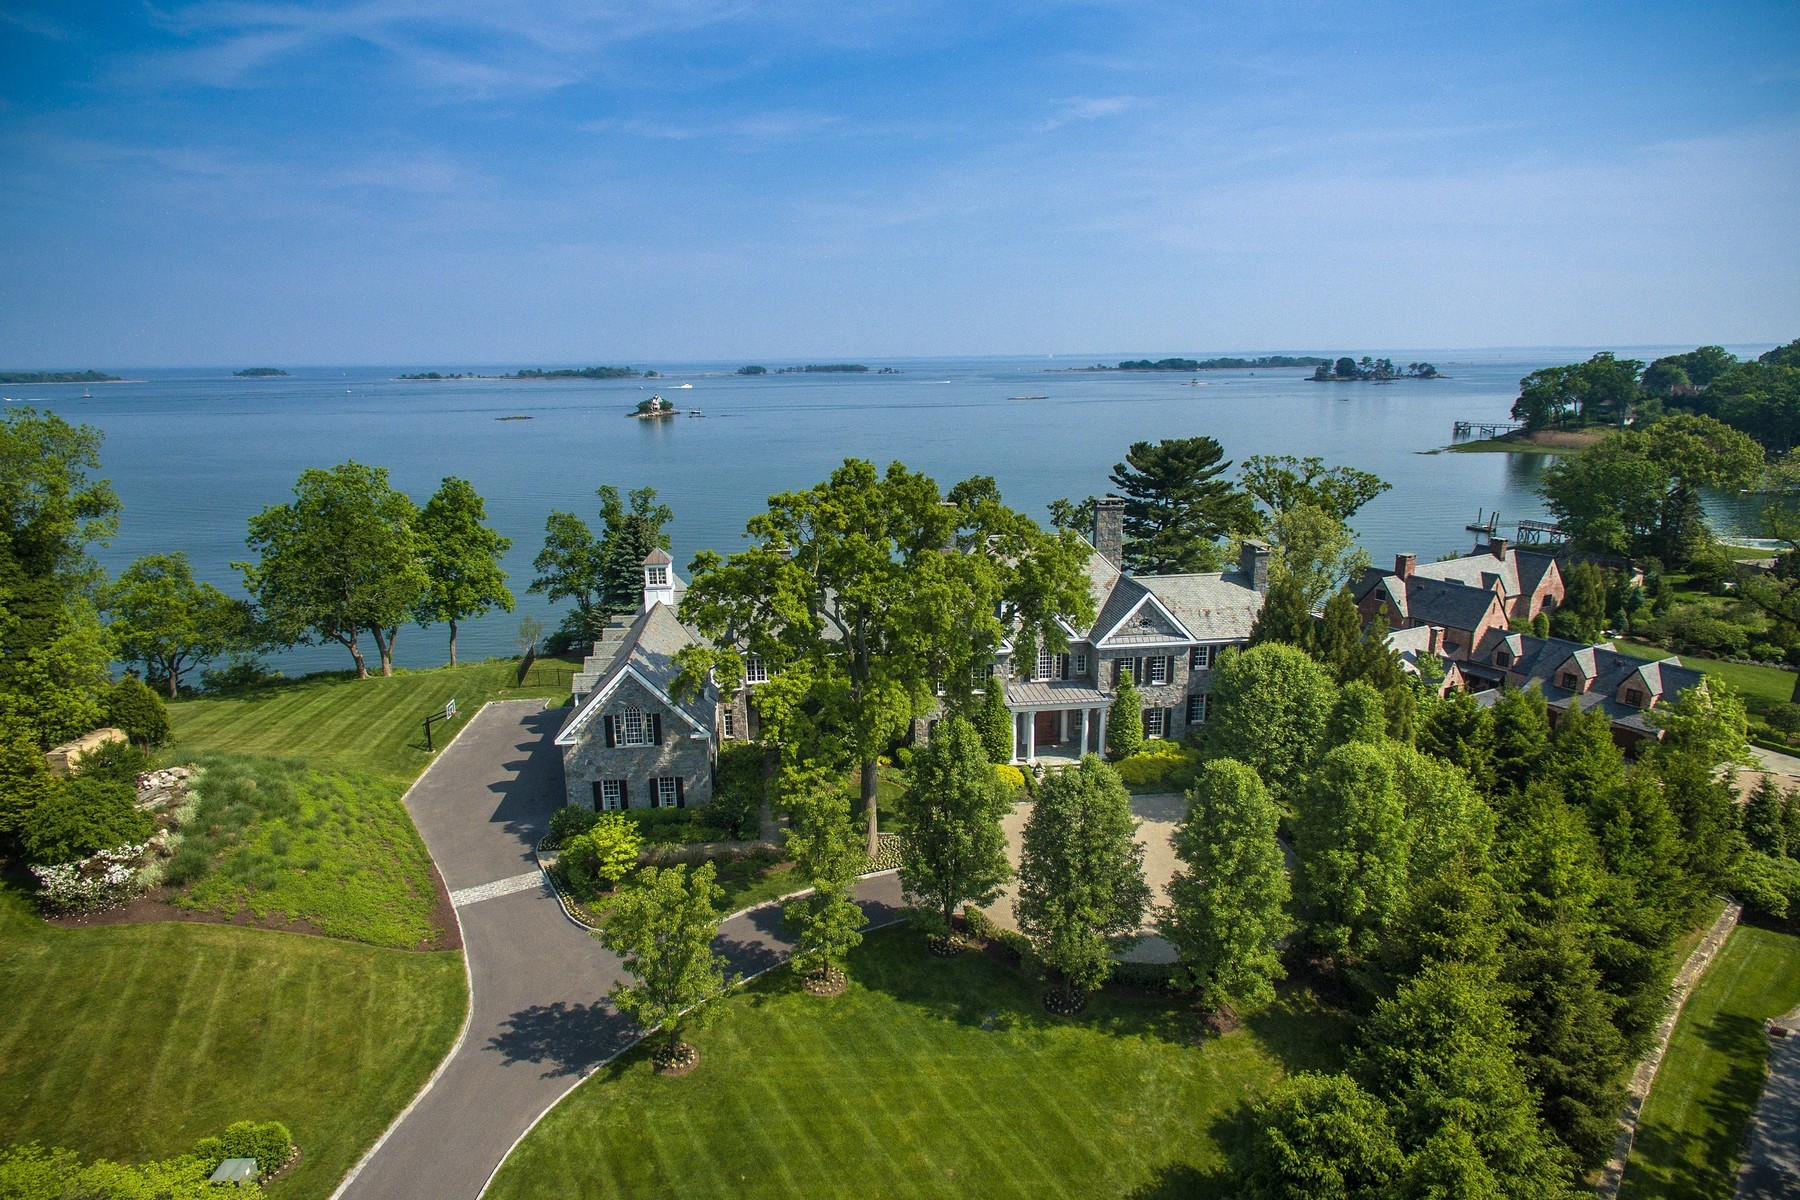 Casa Unifamiliar por un Venta en Elegant Waterfront Georgian Manor 12 Valley Road Norwalk, Connecticut 06854 Estados Unidos